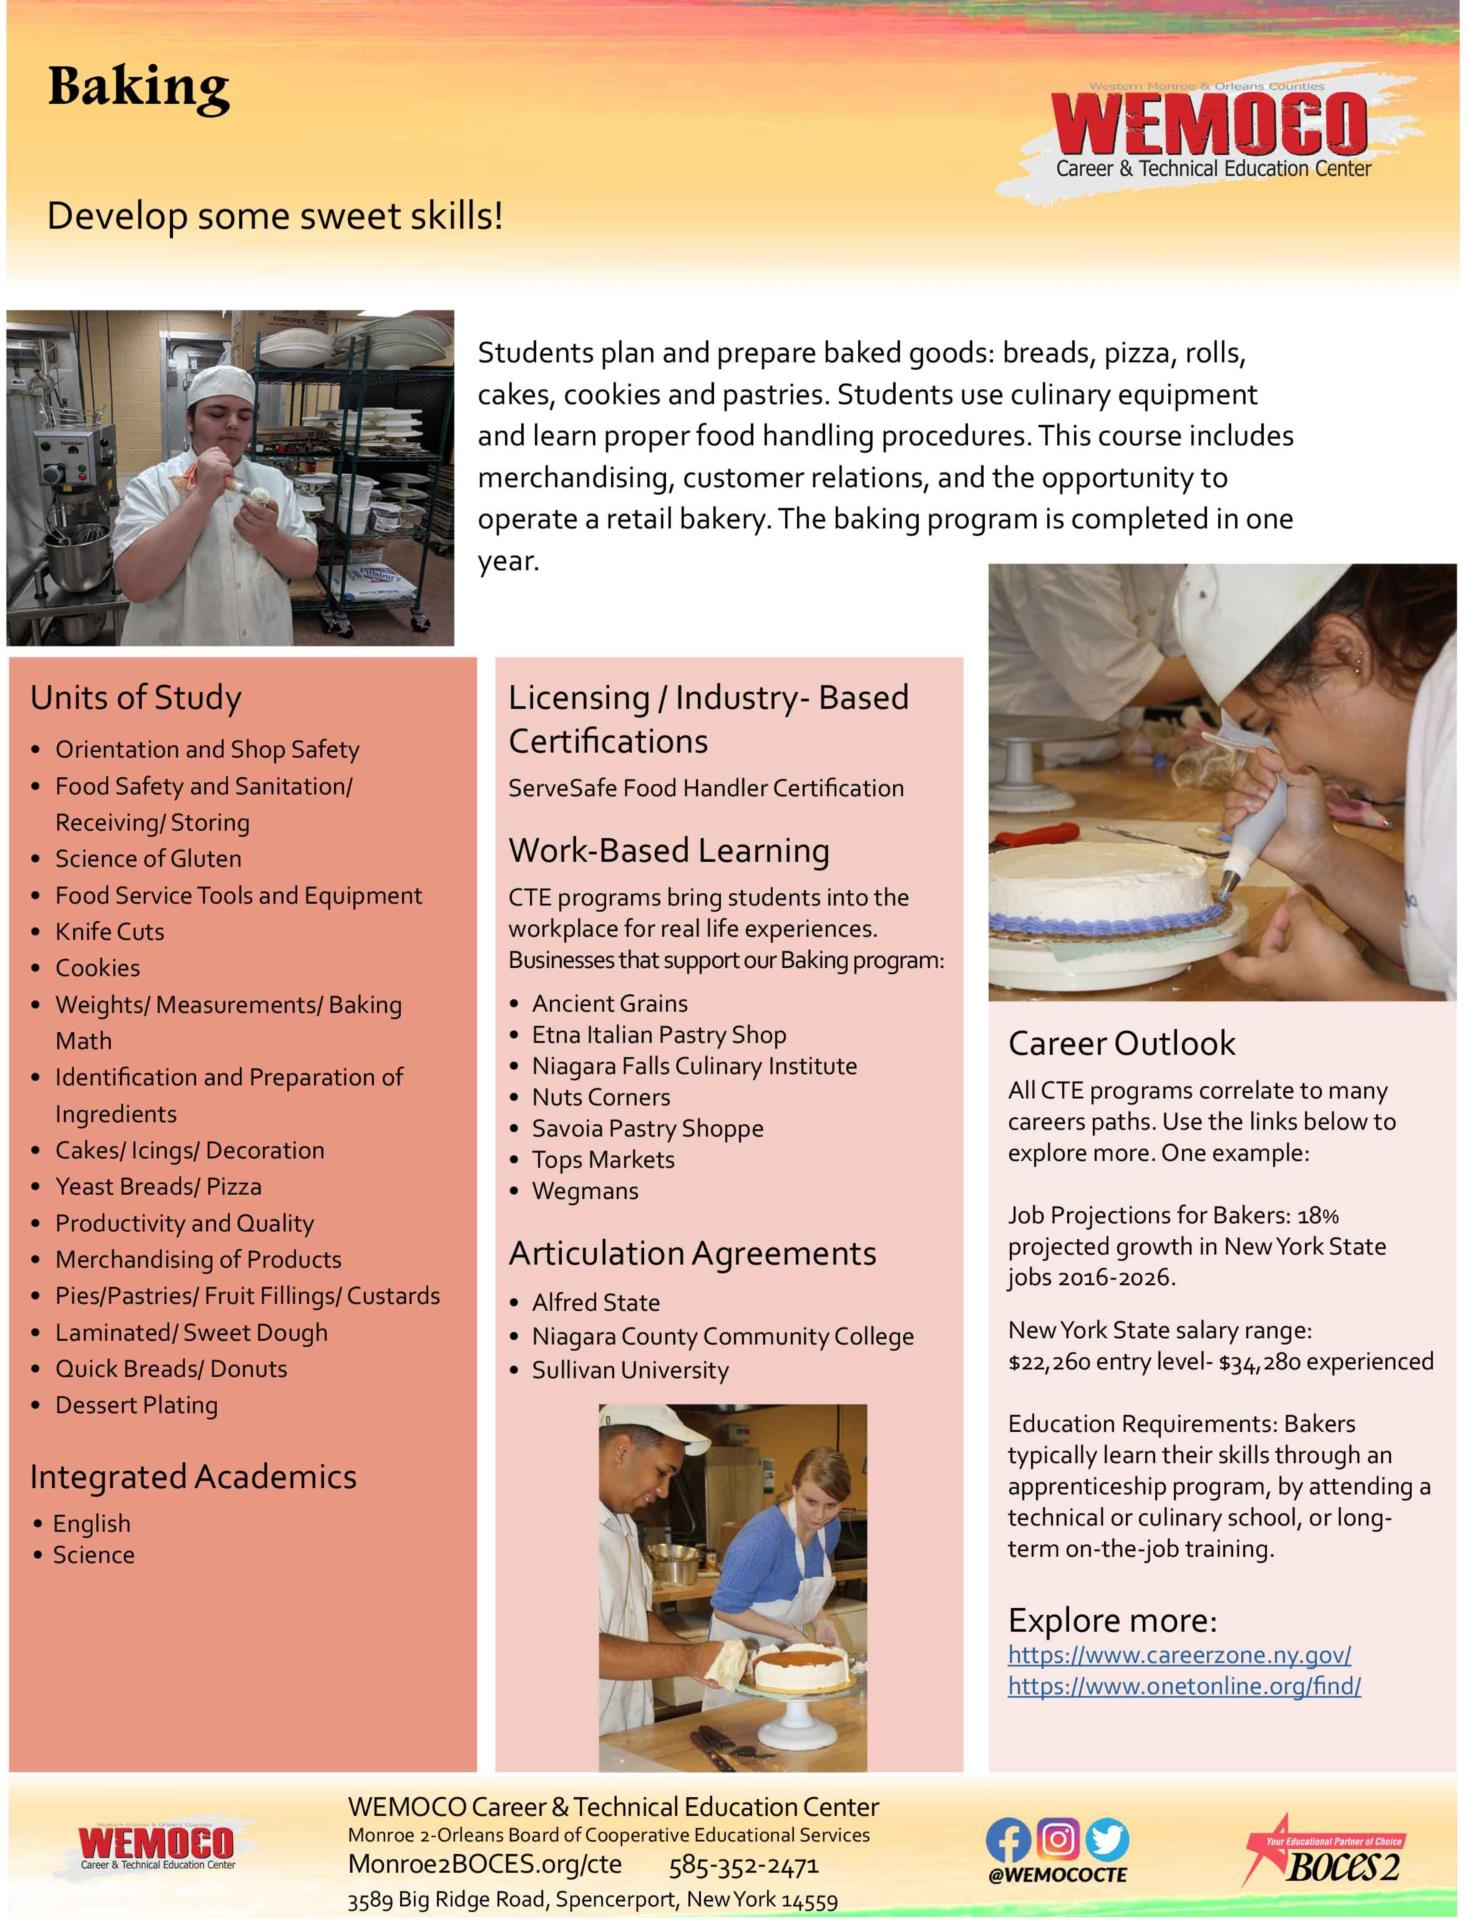 Download a PDF overview of the Baking program information